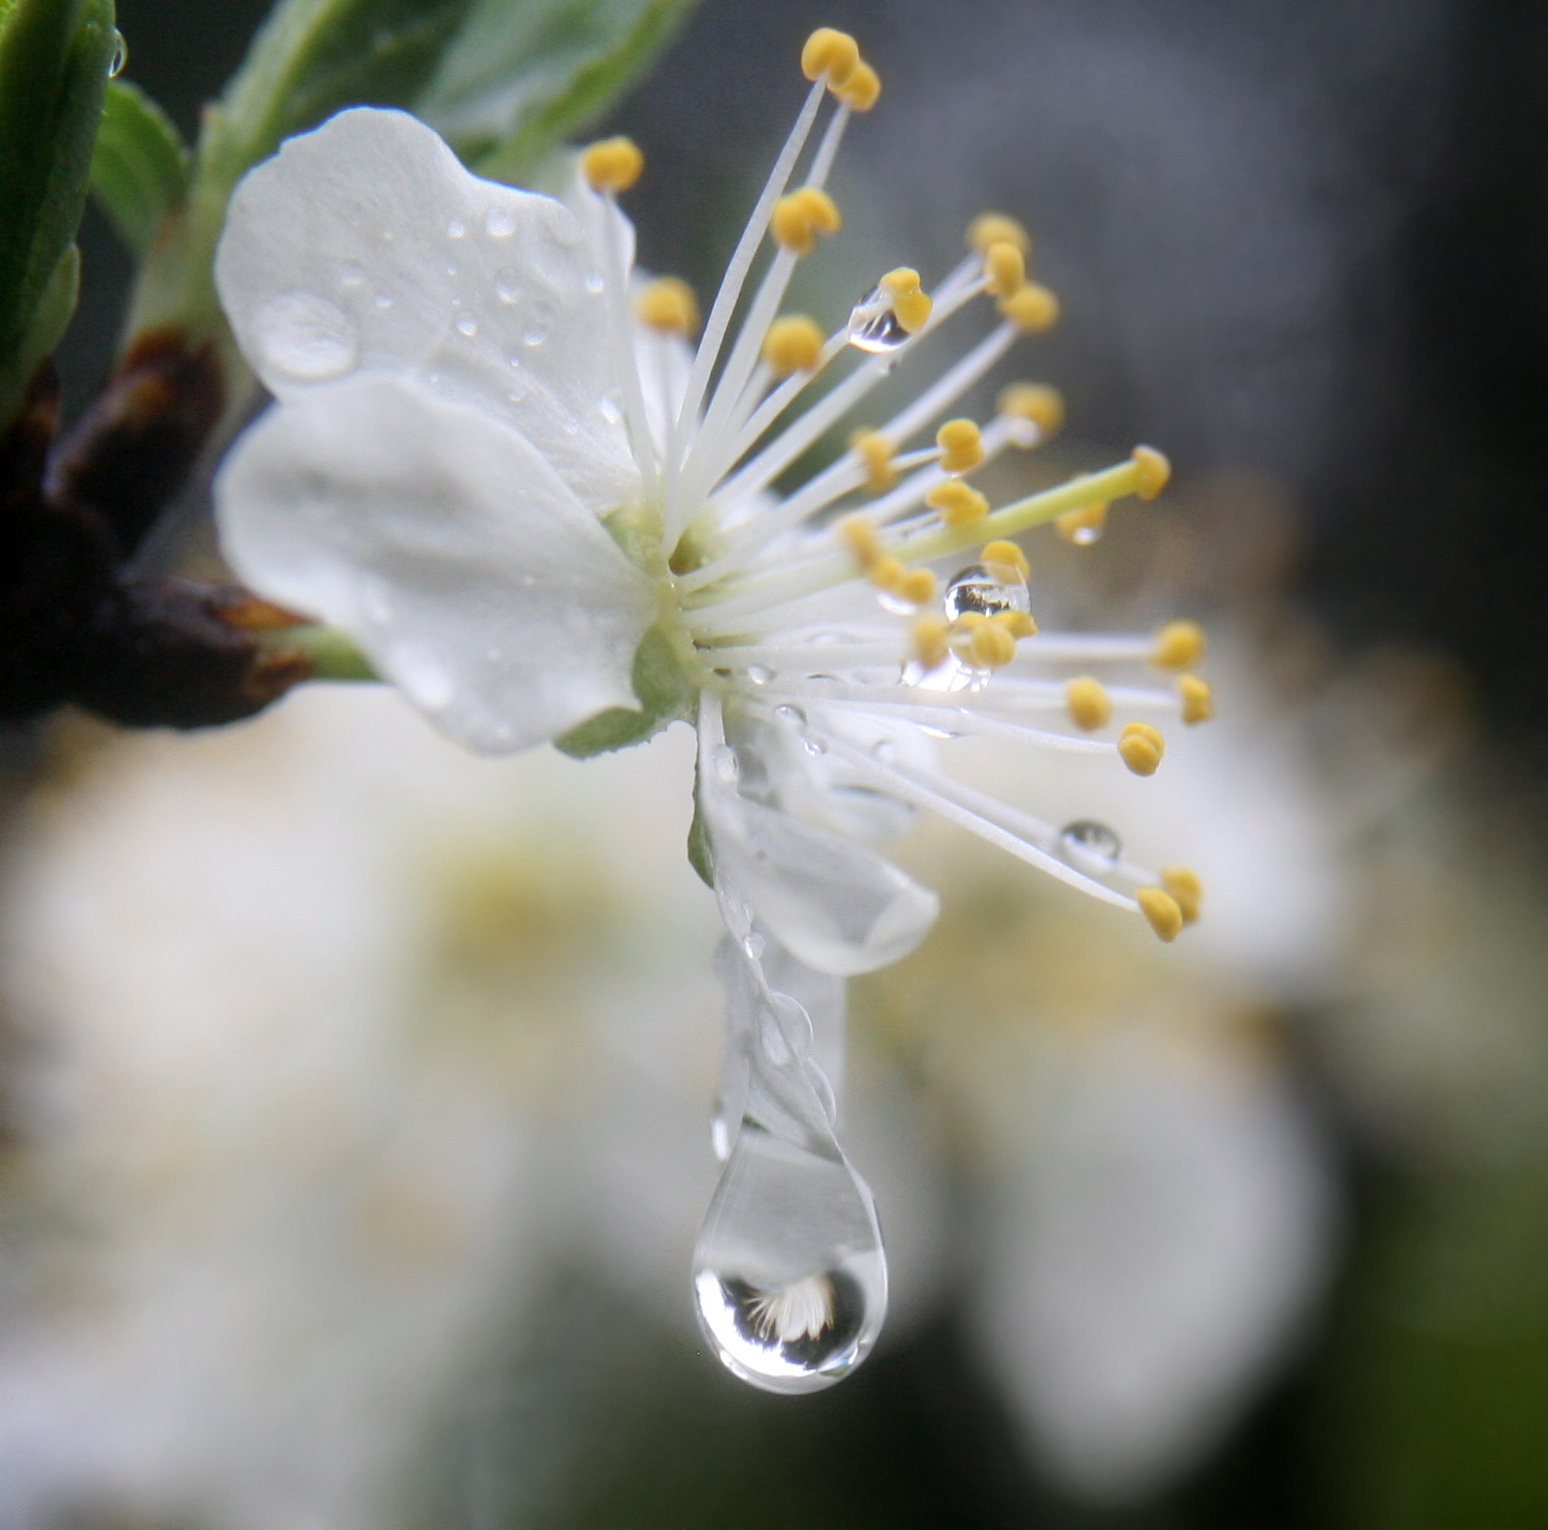 A_flower_refracted_in_rain_droplets